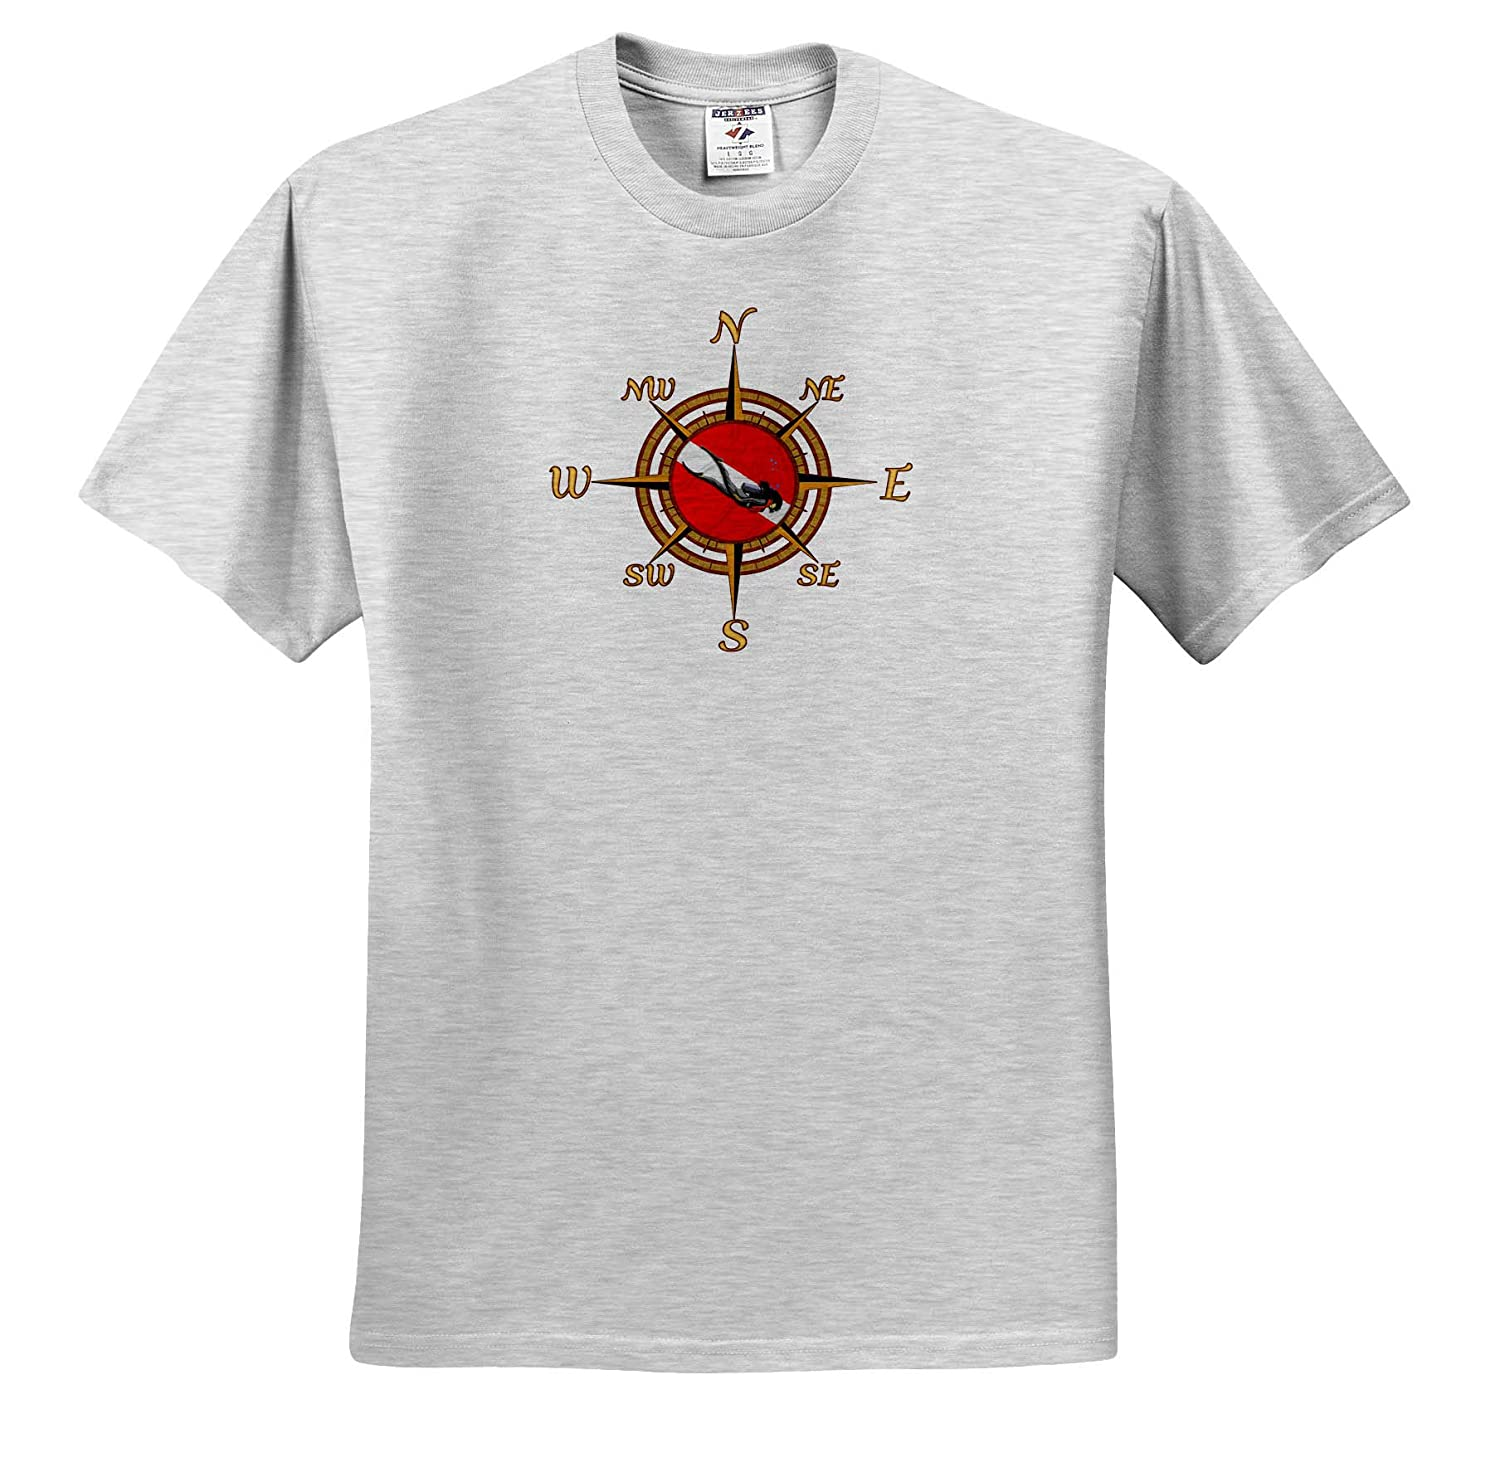 3dRose Macdonald Creative Studios - T-Shirts A Compass Rose Inset with a Scuba Dive Flag and Scuba Diver Scuba